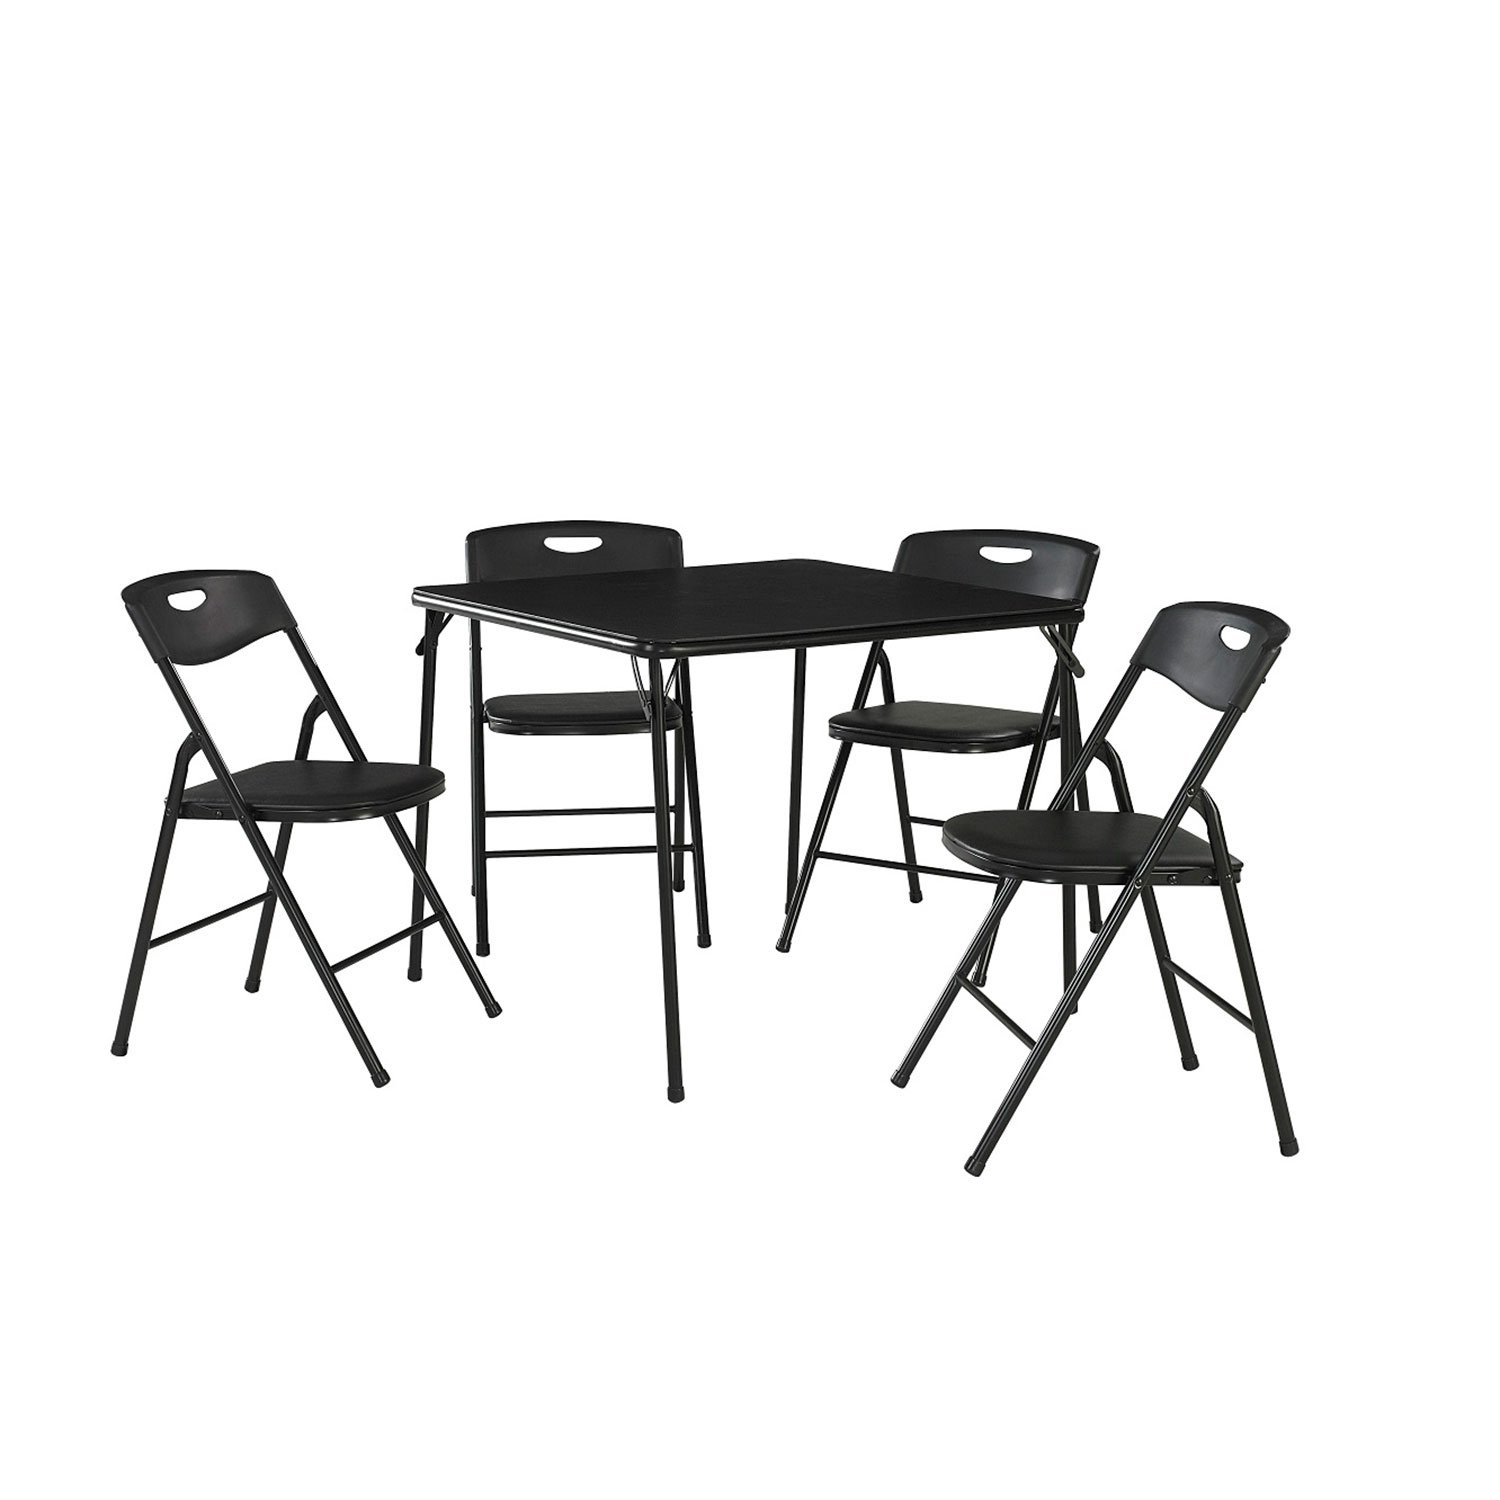 Cosco 5 Piece Home Dining Contemporary Steel Folding Table and Chair Set, Black